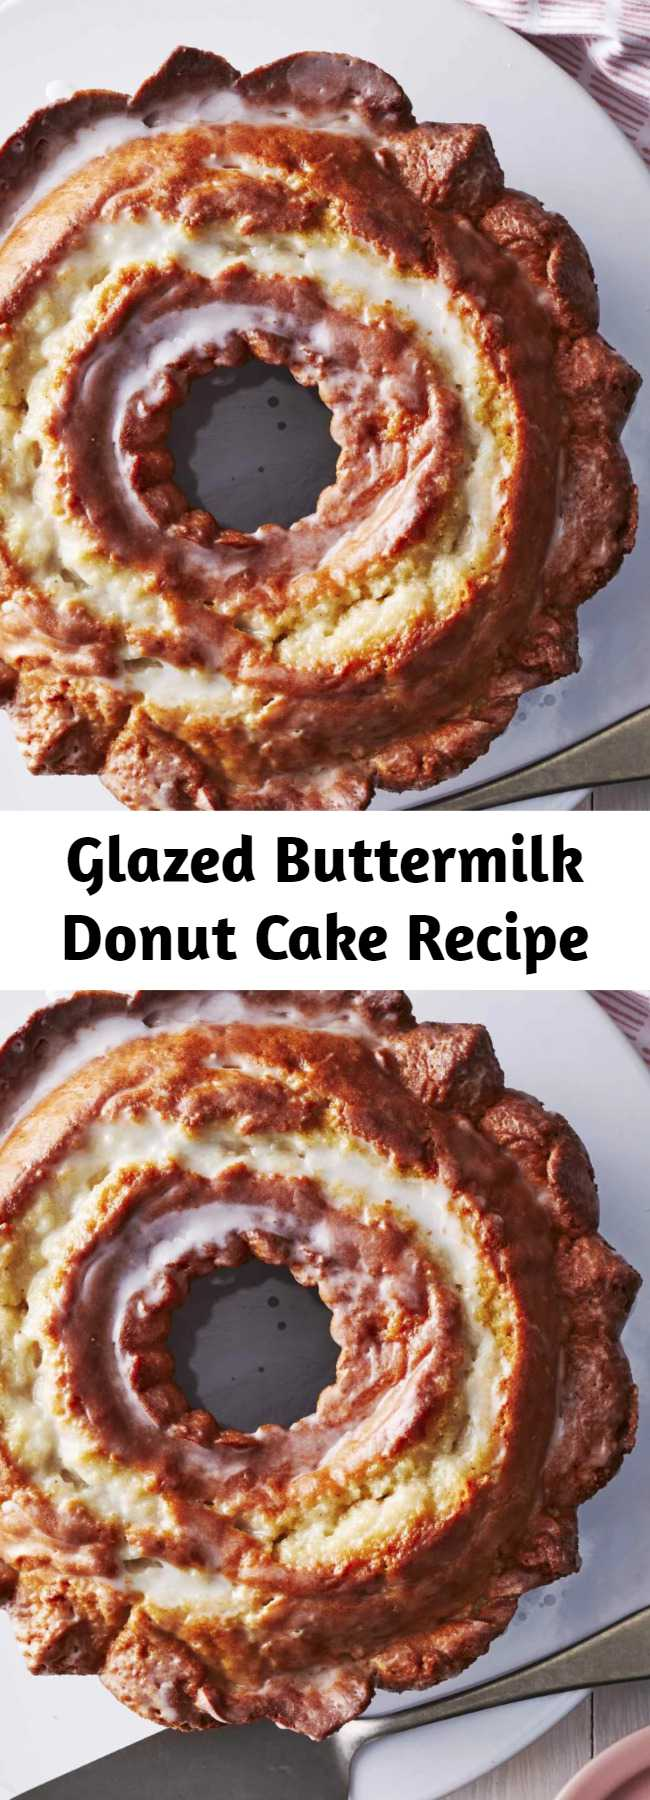 """Glazed Buttermilk Donut Cake Recipe - This oversized """"donut"""" is sure to be a hit. Although this dessert looks straight from the donut shop, the recipe itself is a moist and tender pound cake with added leavening, which gives the cake the cracked and craggy appearance of an old-fashioned donut. This delicious dessert idea is perfect for a bored-baking marathon. #recipes #recipeideas #dessert #dessertrecipes"""